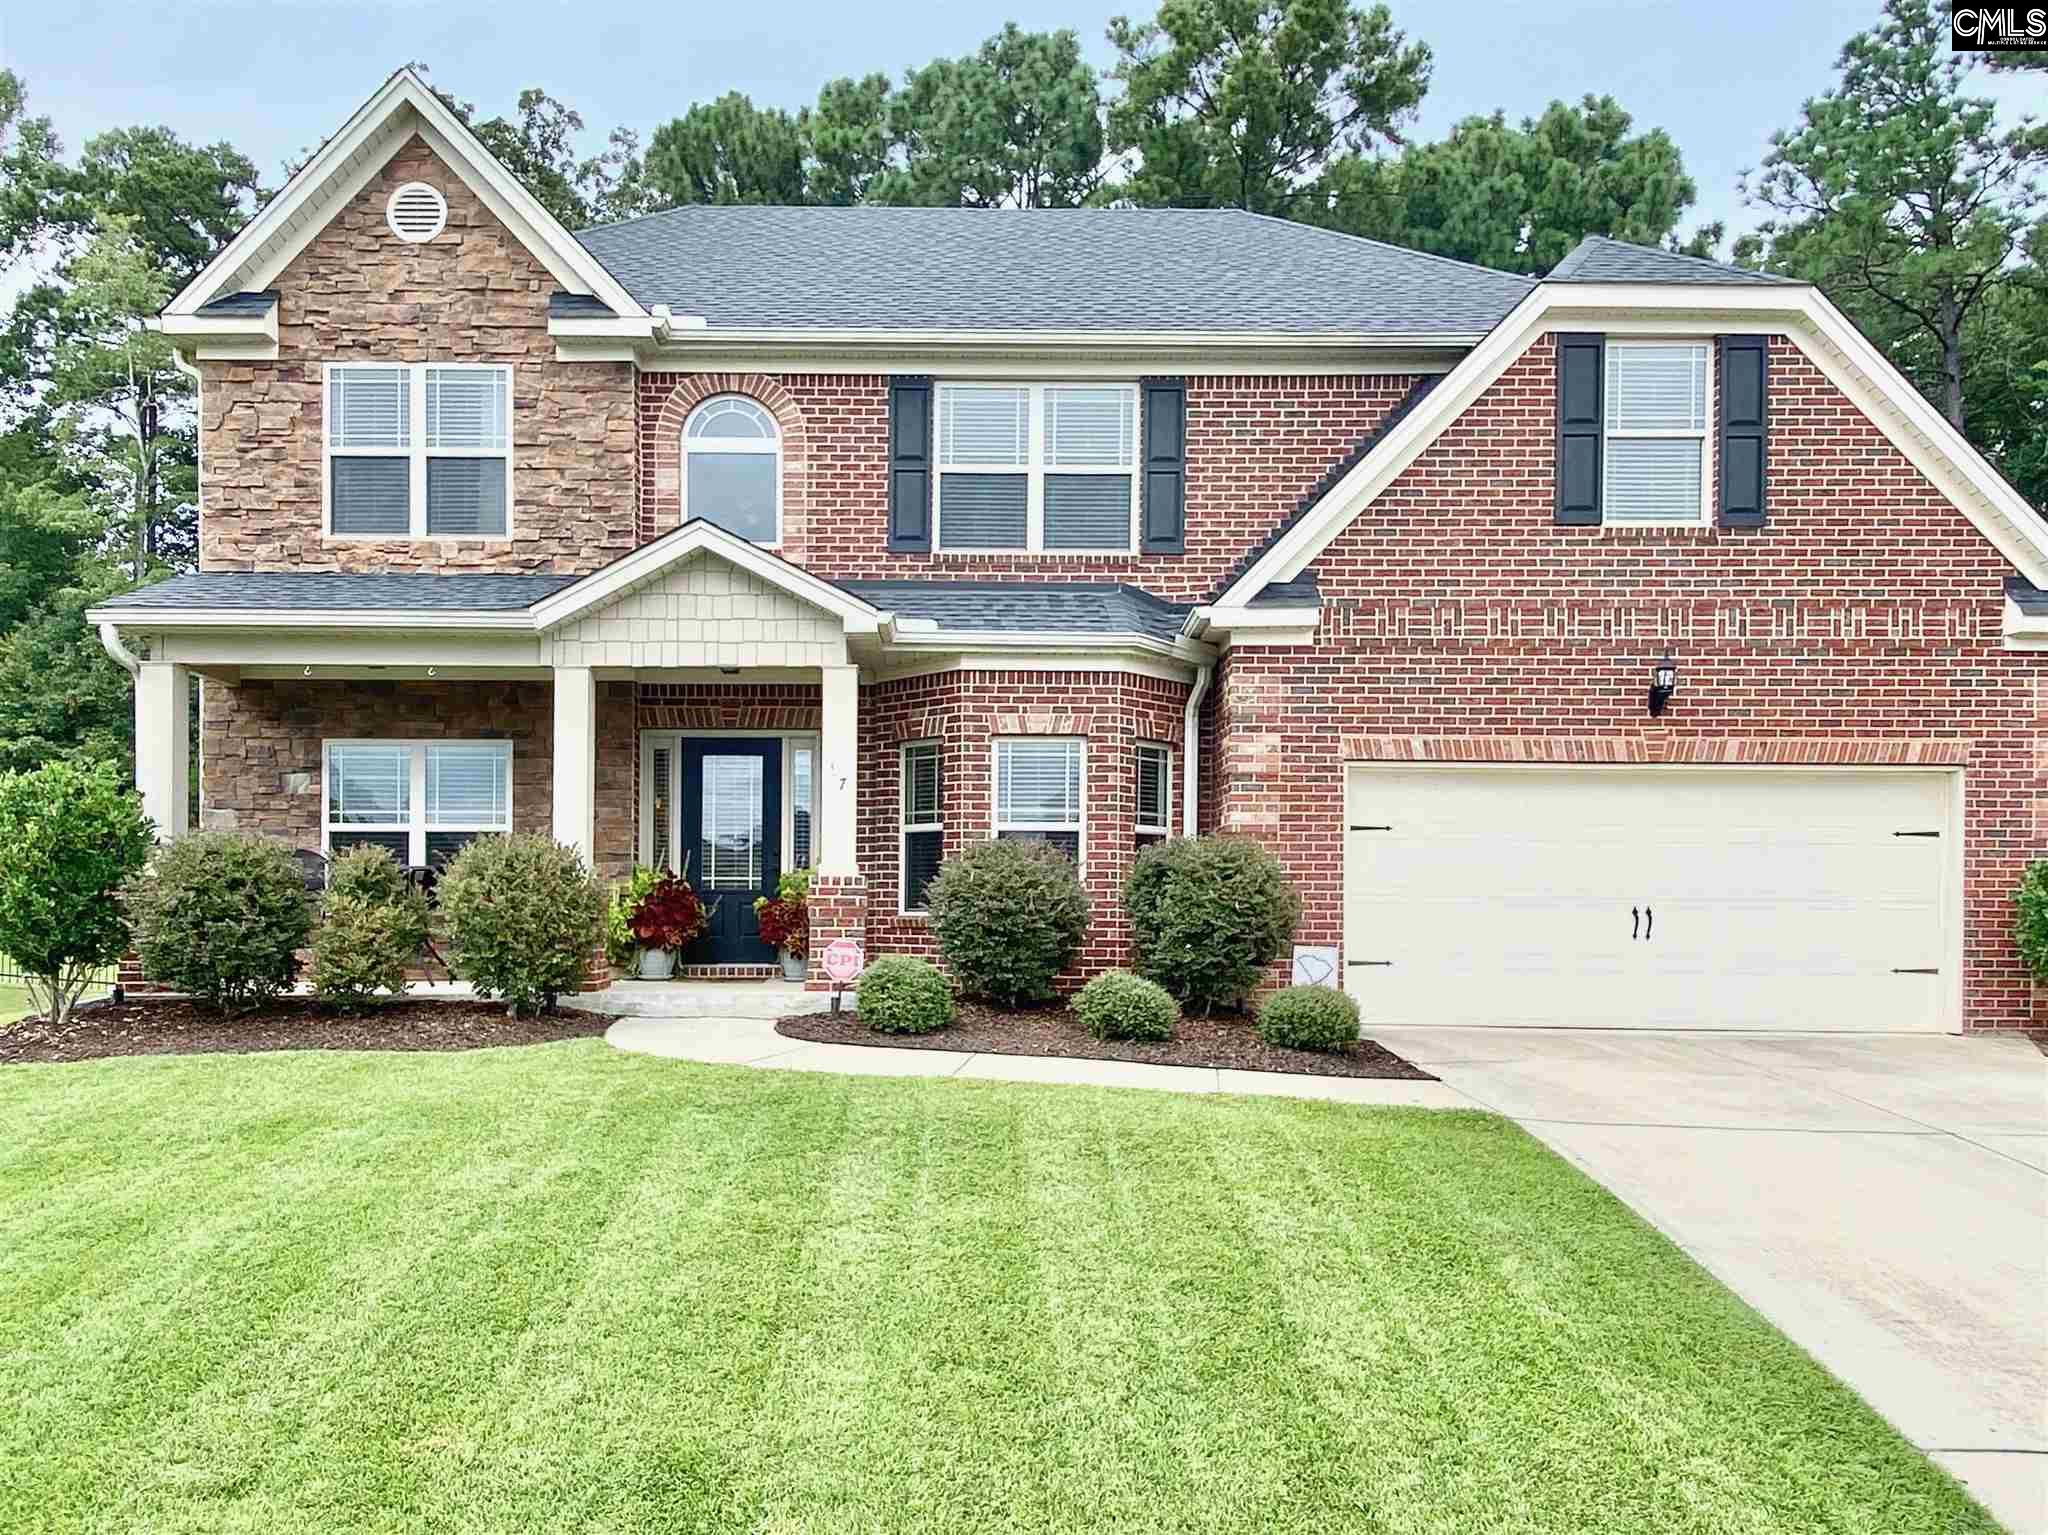 197 Hope Springs Lexington, SC 29072